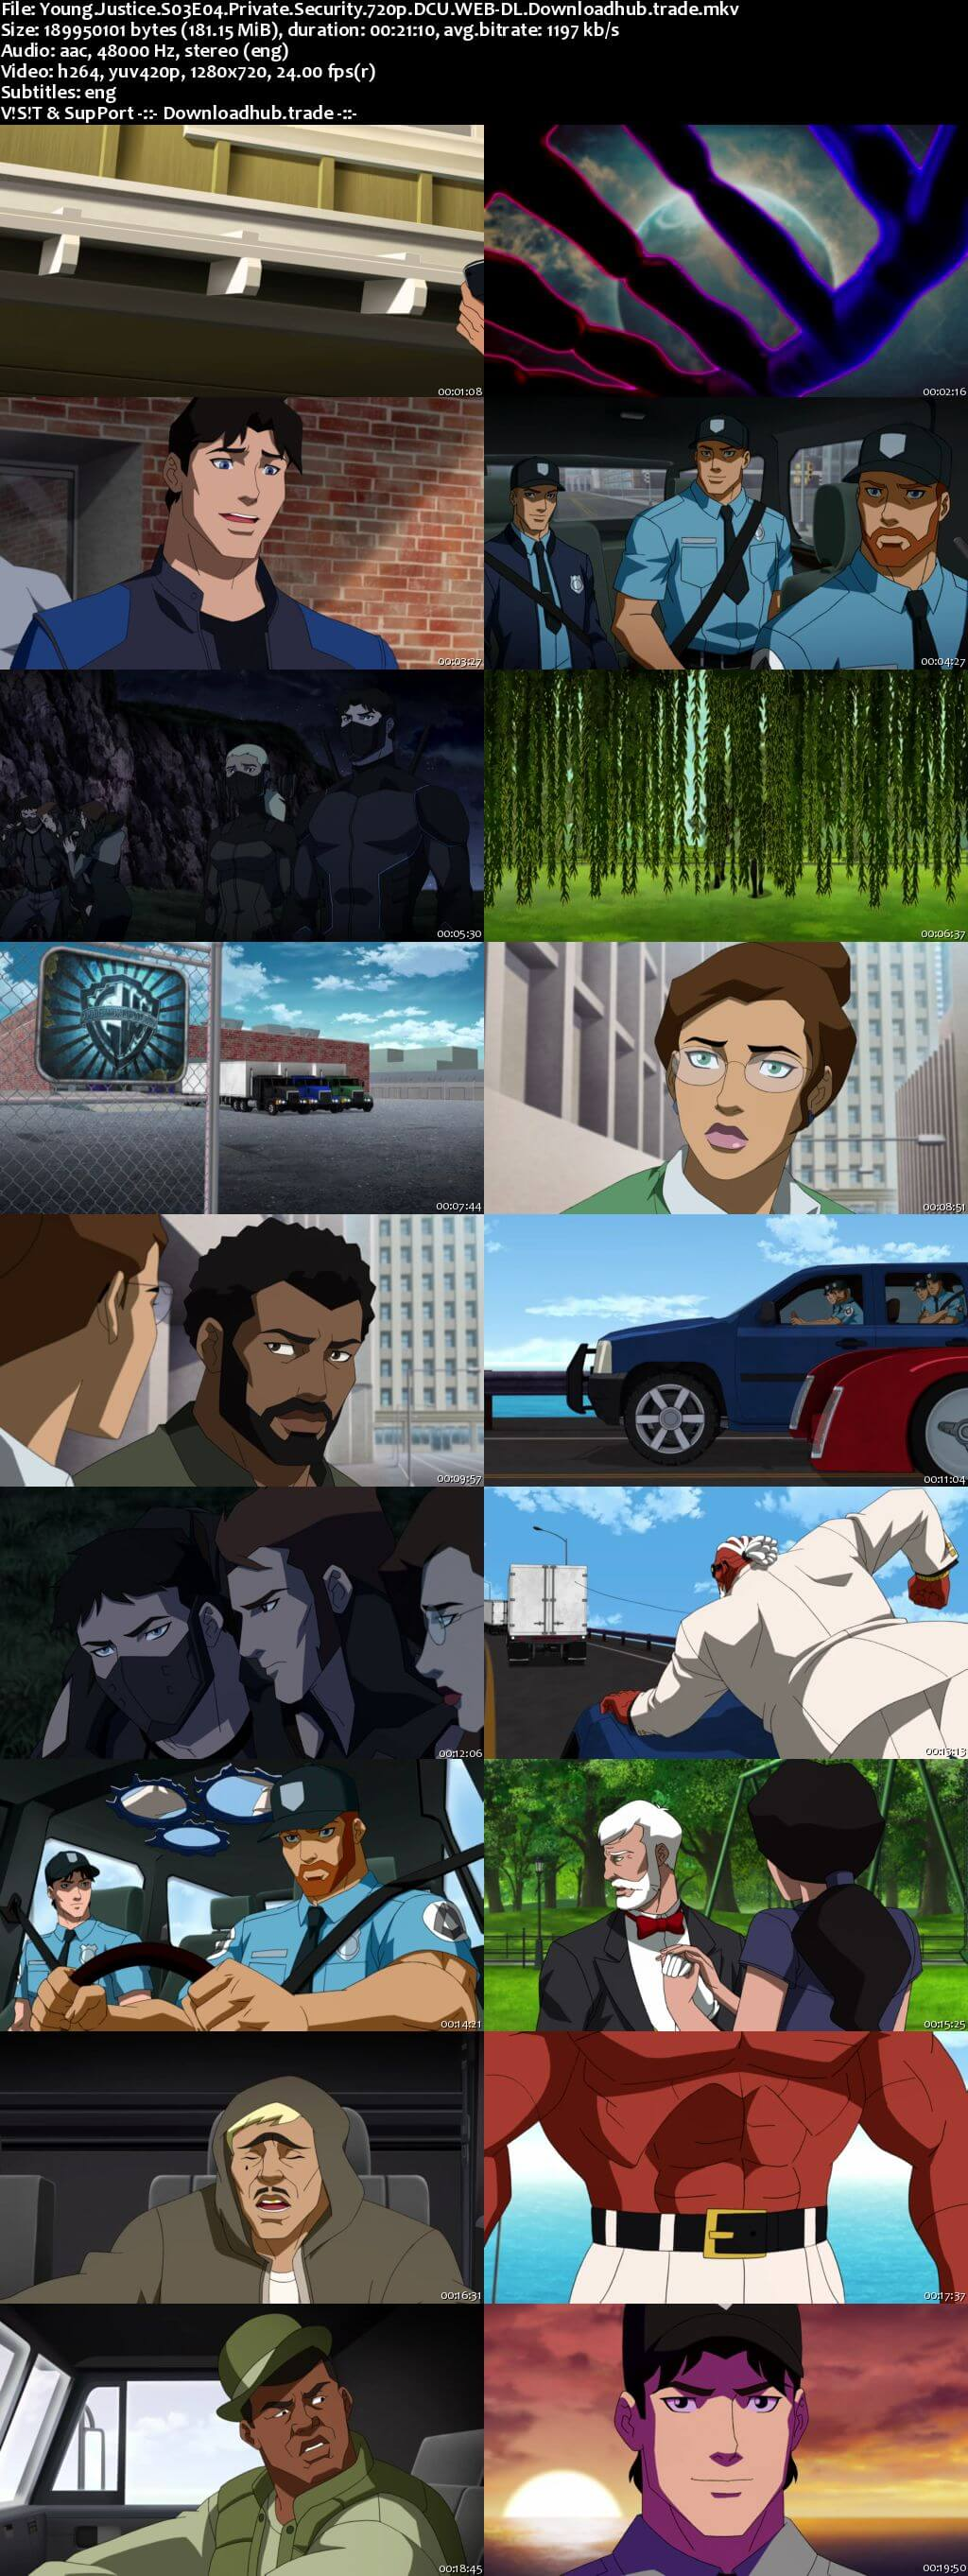 Young Justice S03E04 180MB DCU WEB-DL 720p ESubs